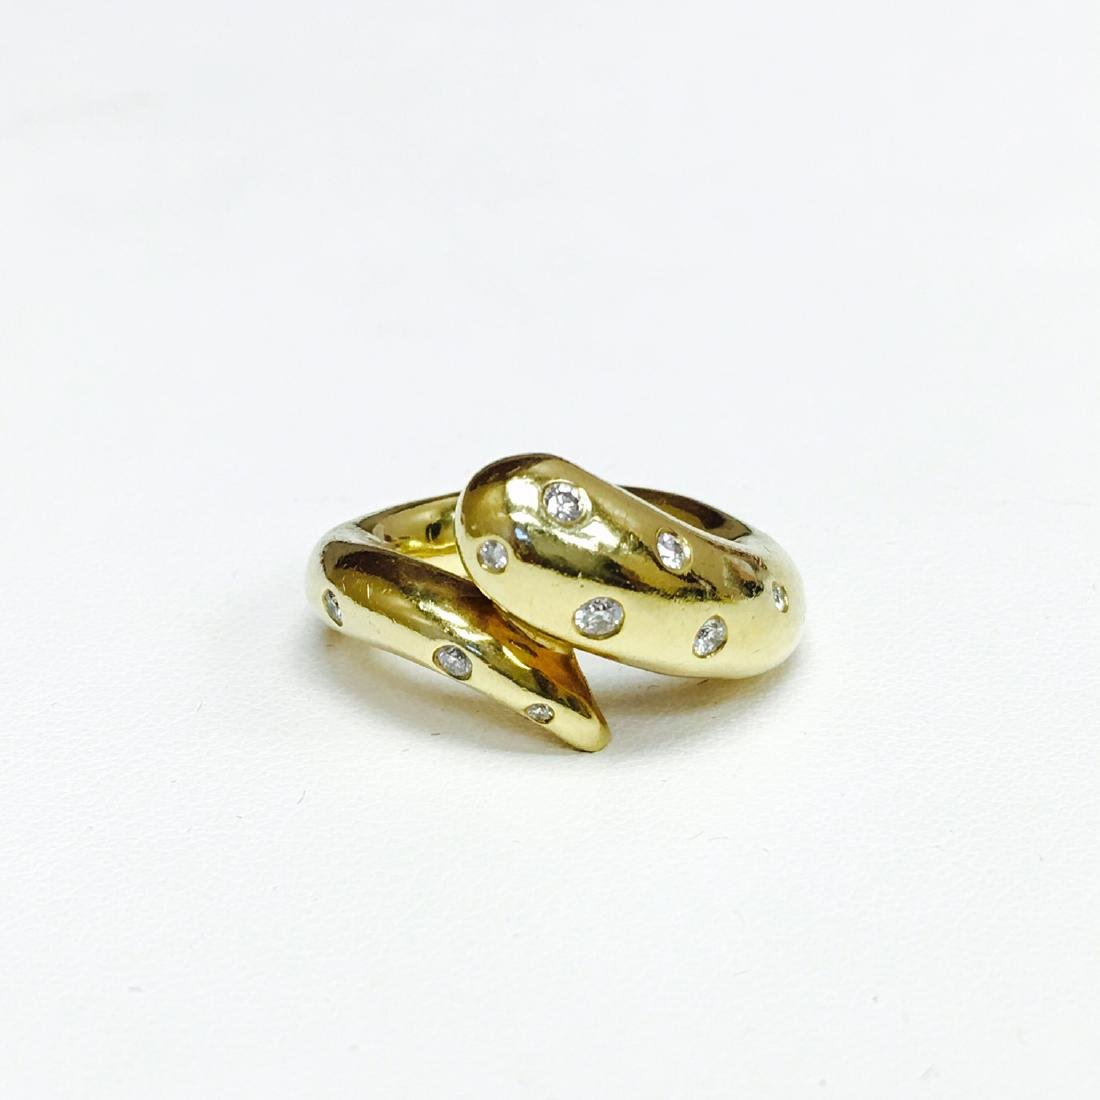 R.F.M.A.S 18k Yellow Gold and White Diamond Ring